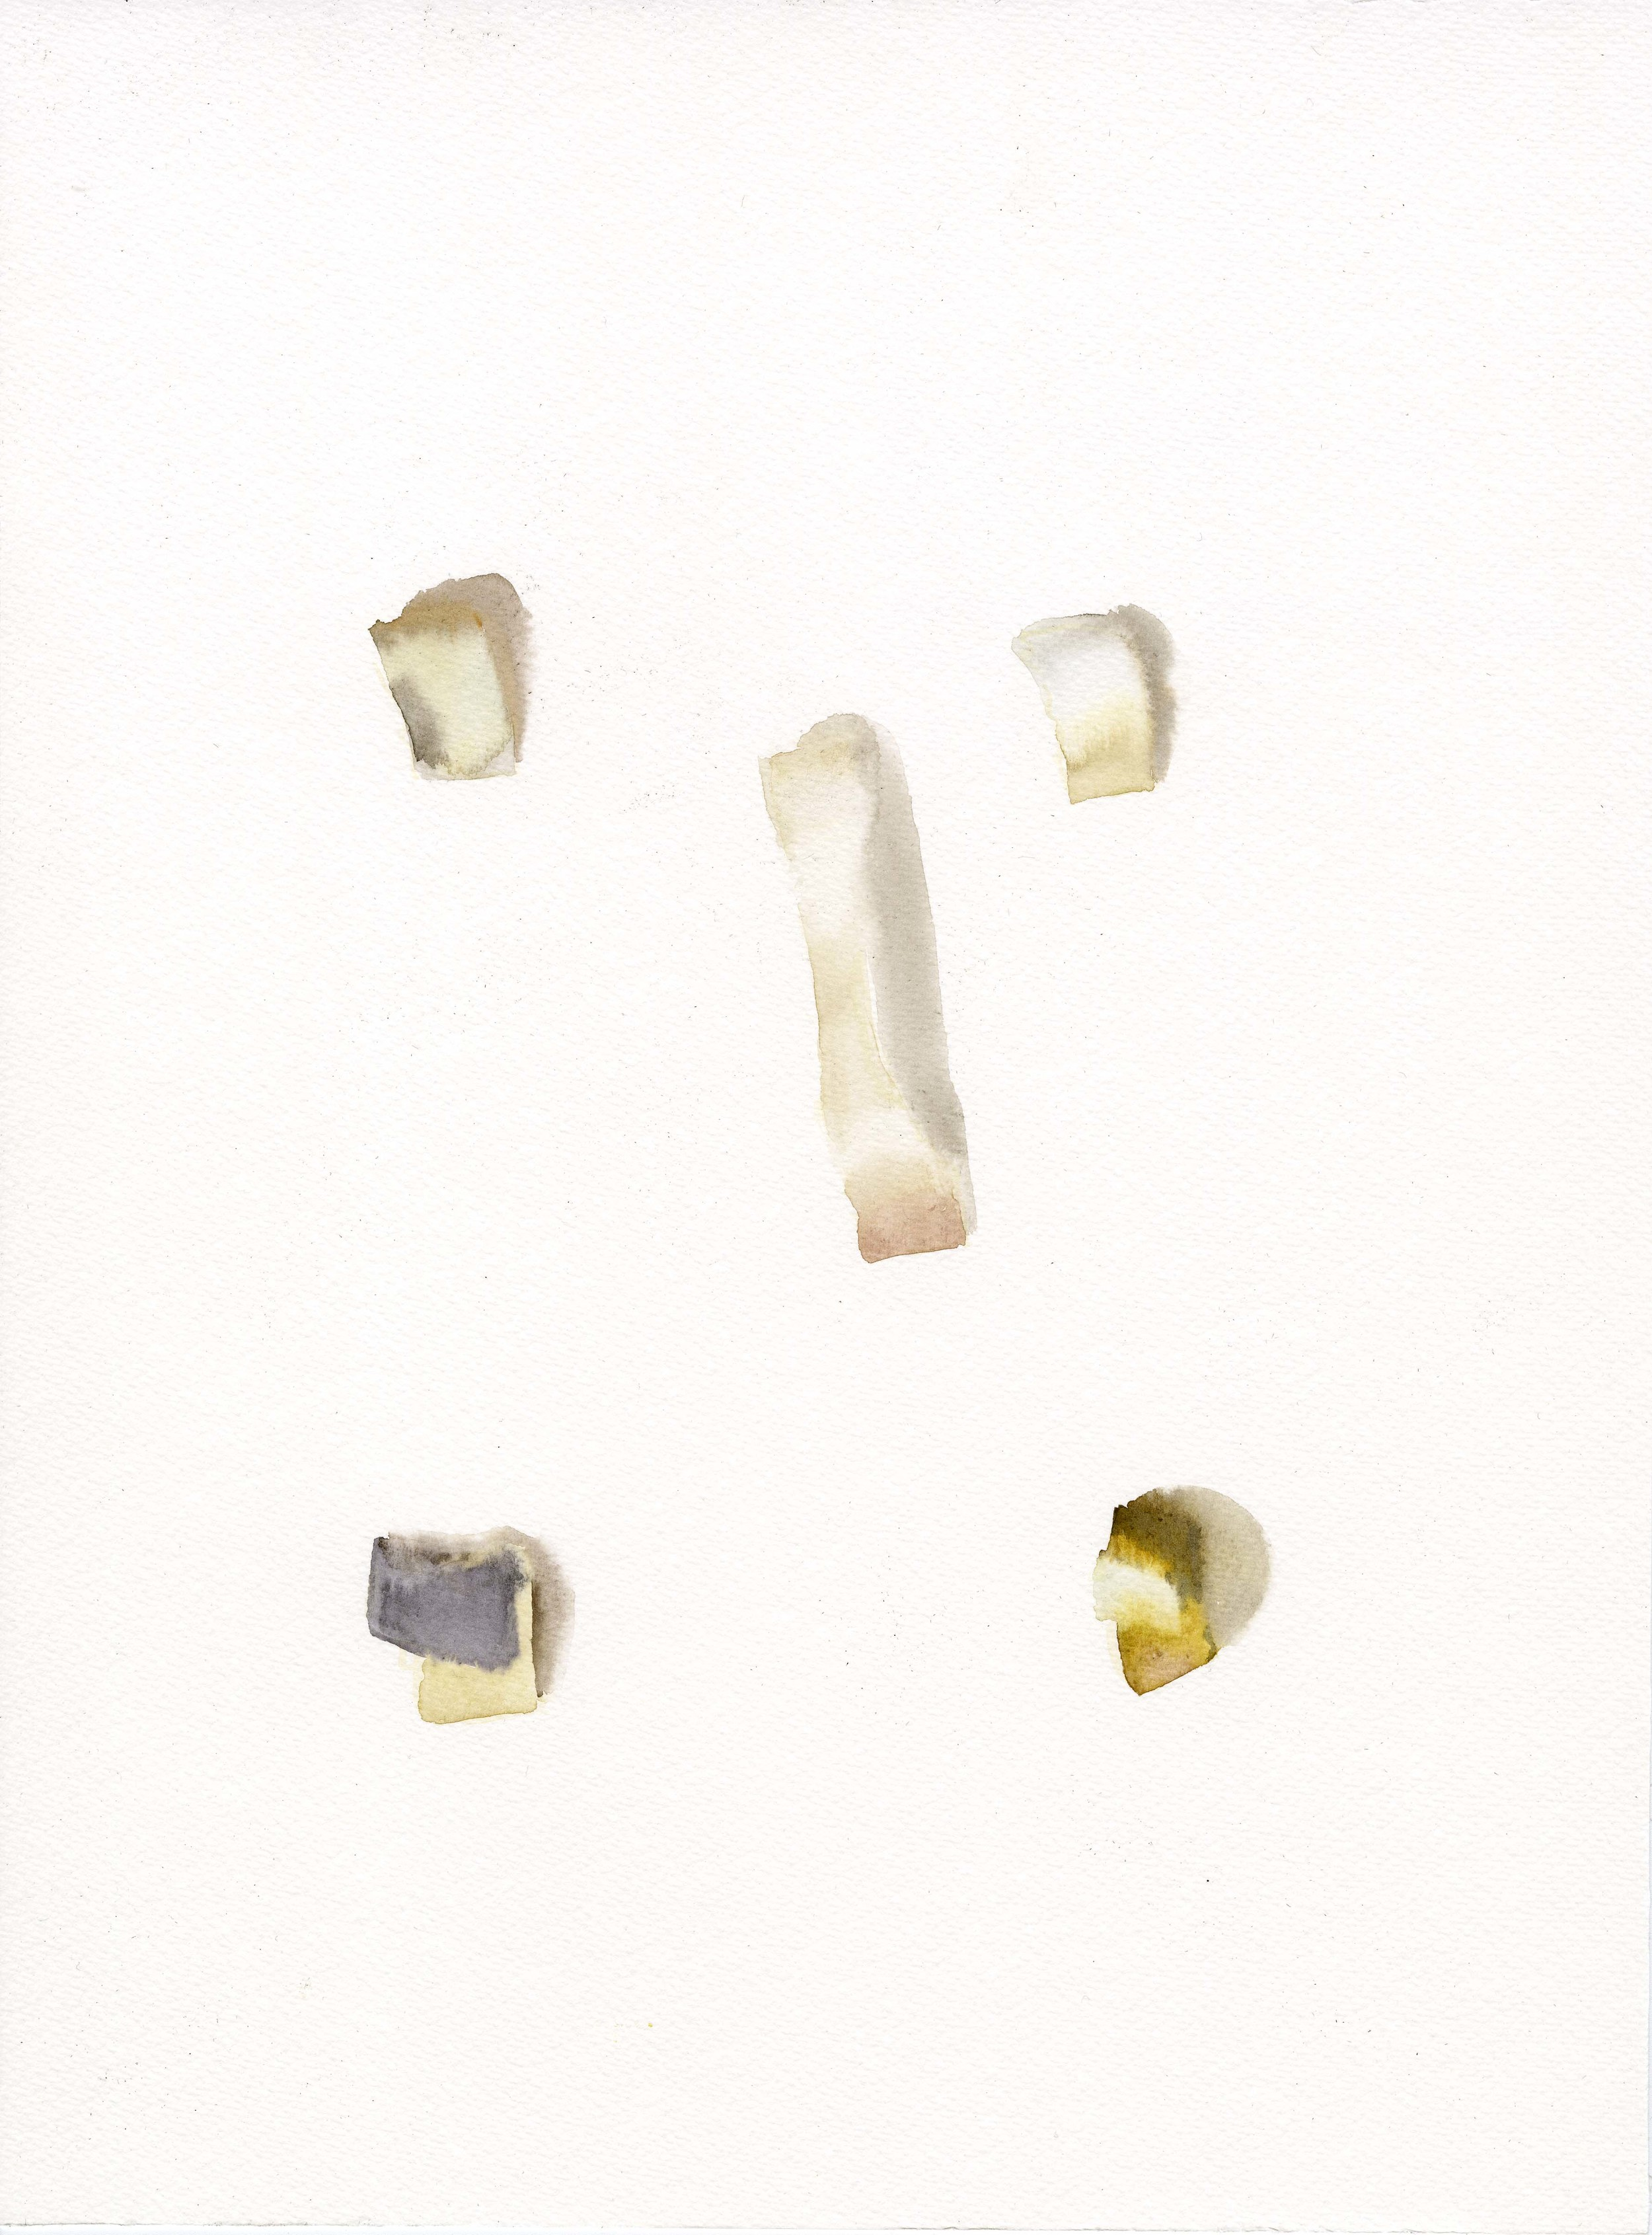 """""""Pinocchio's Face"""", 2014, Watercolor on Paper 纸上⽔水彩 16.1 x 12 in. (40.6 x 30.5 cm)"""